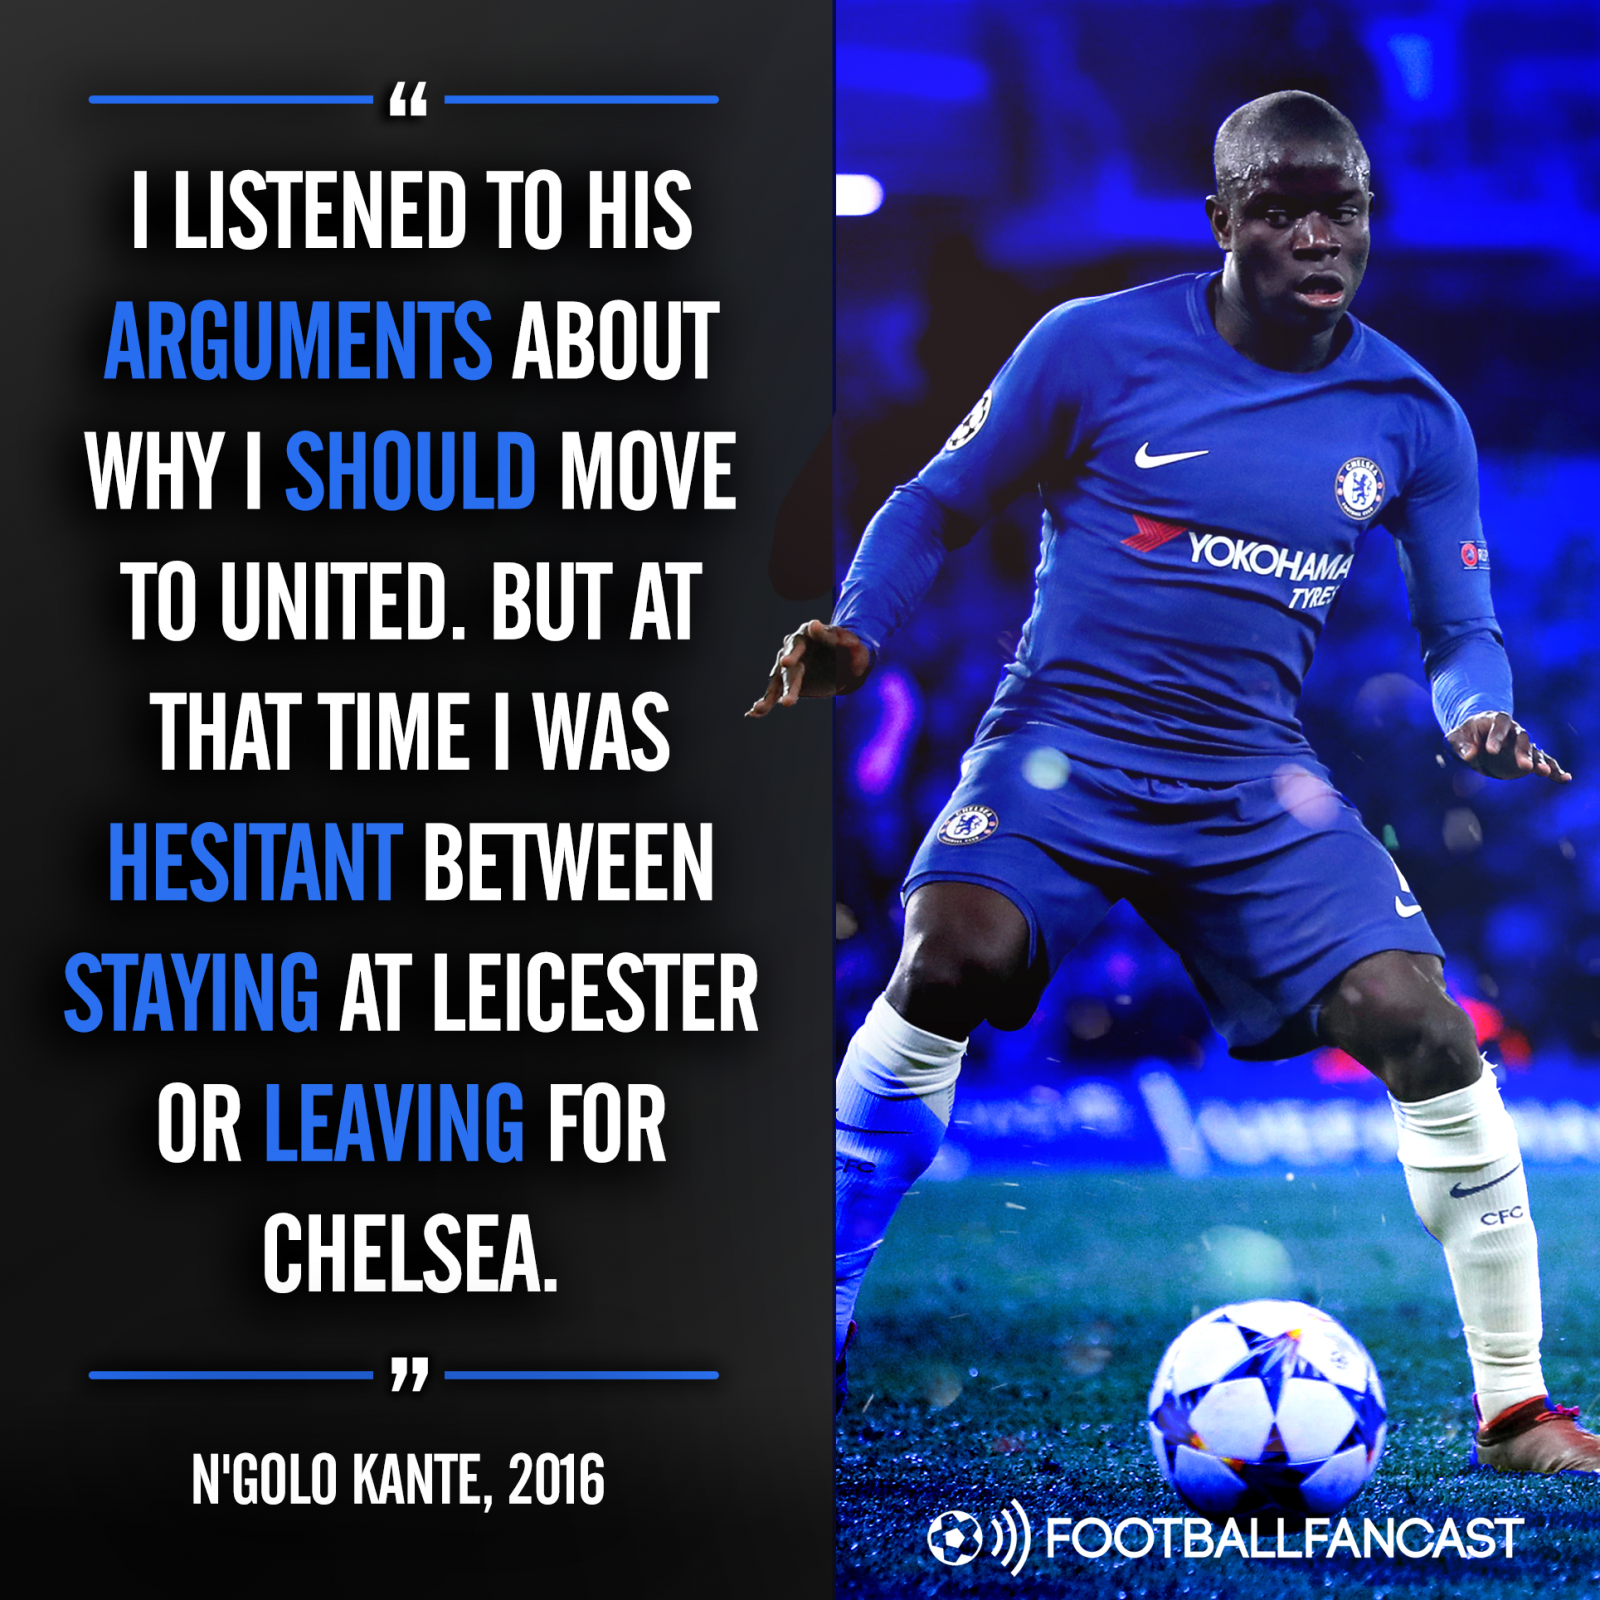 N'Golo Kante on Manchester United, 2016